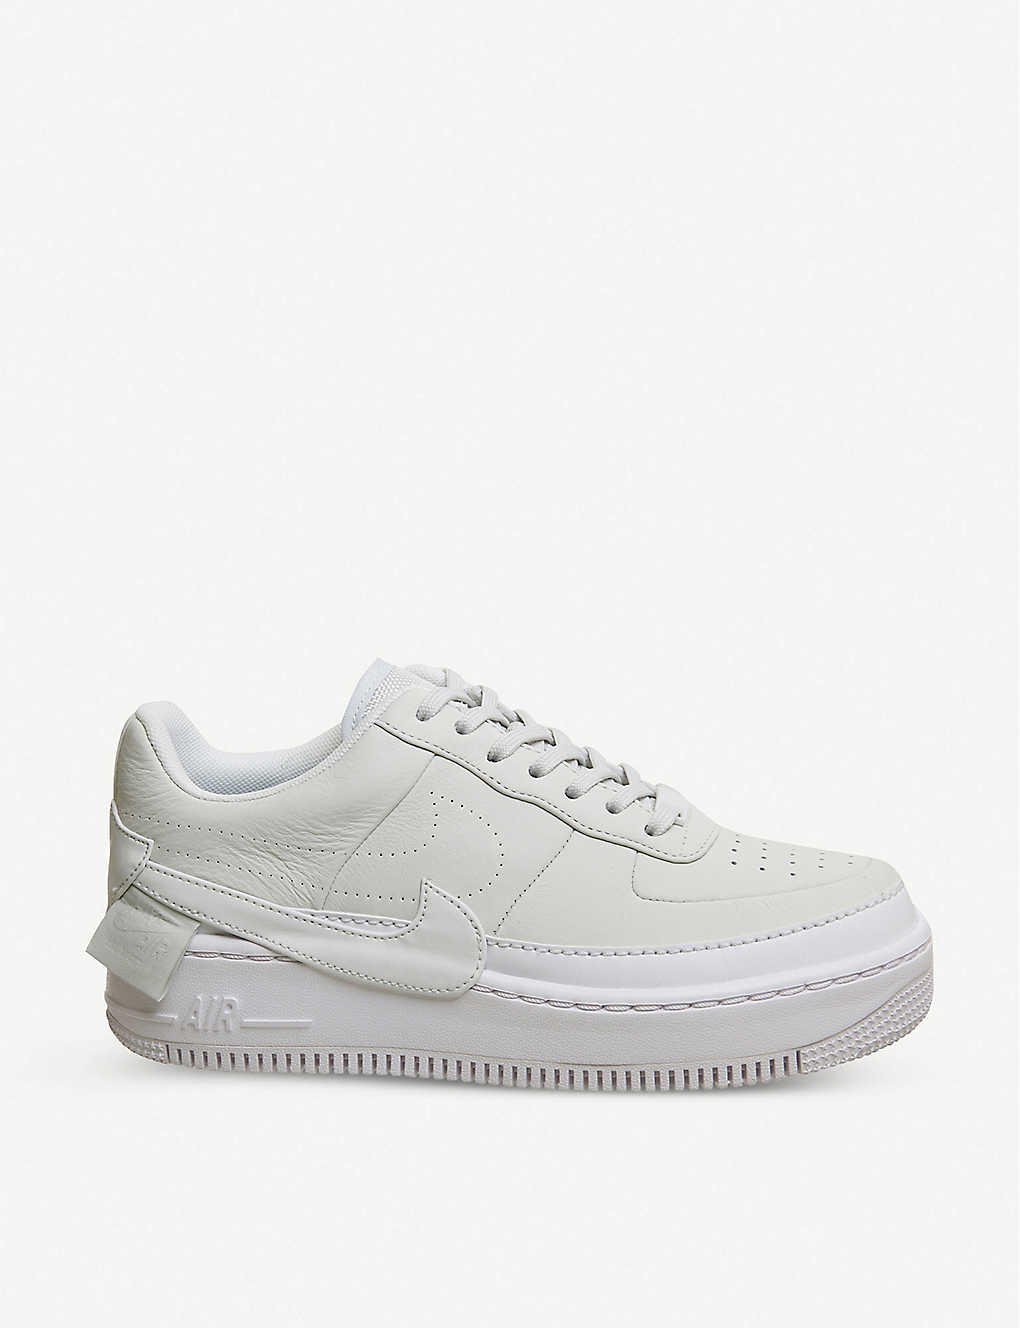 cc7c20ff62 Air Force 1 Jester XX leather trainer - Icons xx off white ...